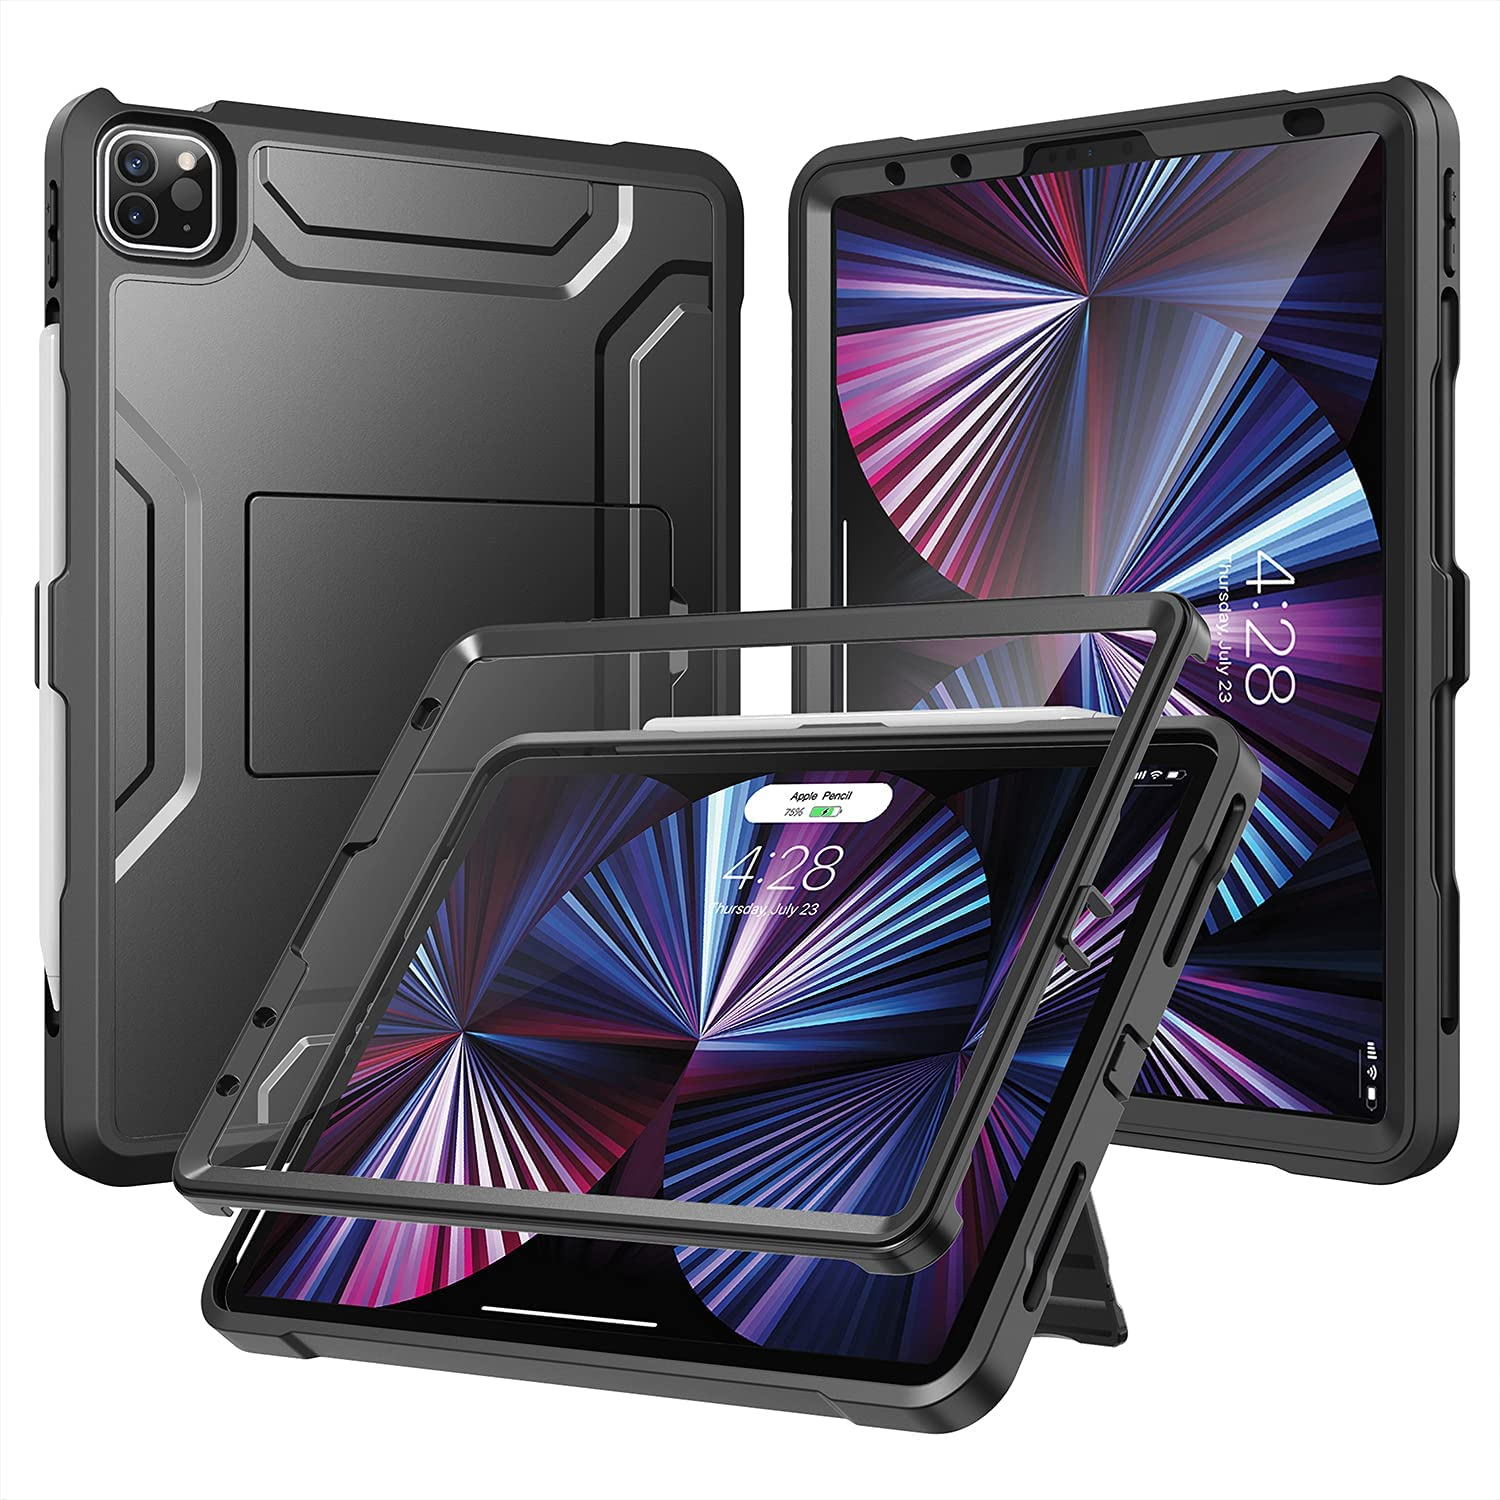 Soke Case for iPad Pro 11 2021 with Built-in Screen Protector - Support 2nd Apple Pencil Charging - Heavy Duty Rugged Protective Kickstand Case for iPad Pro 11 Inch 3rd Generation - Black